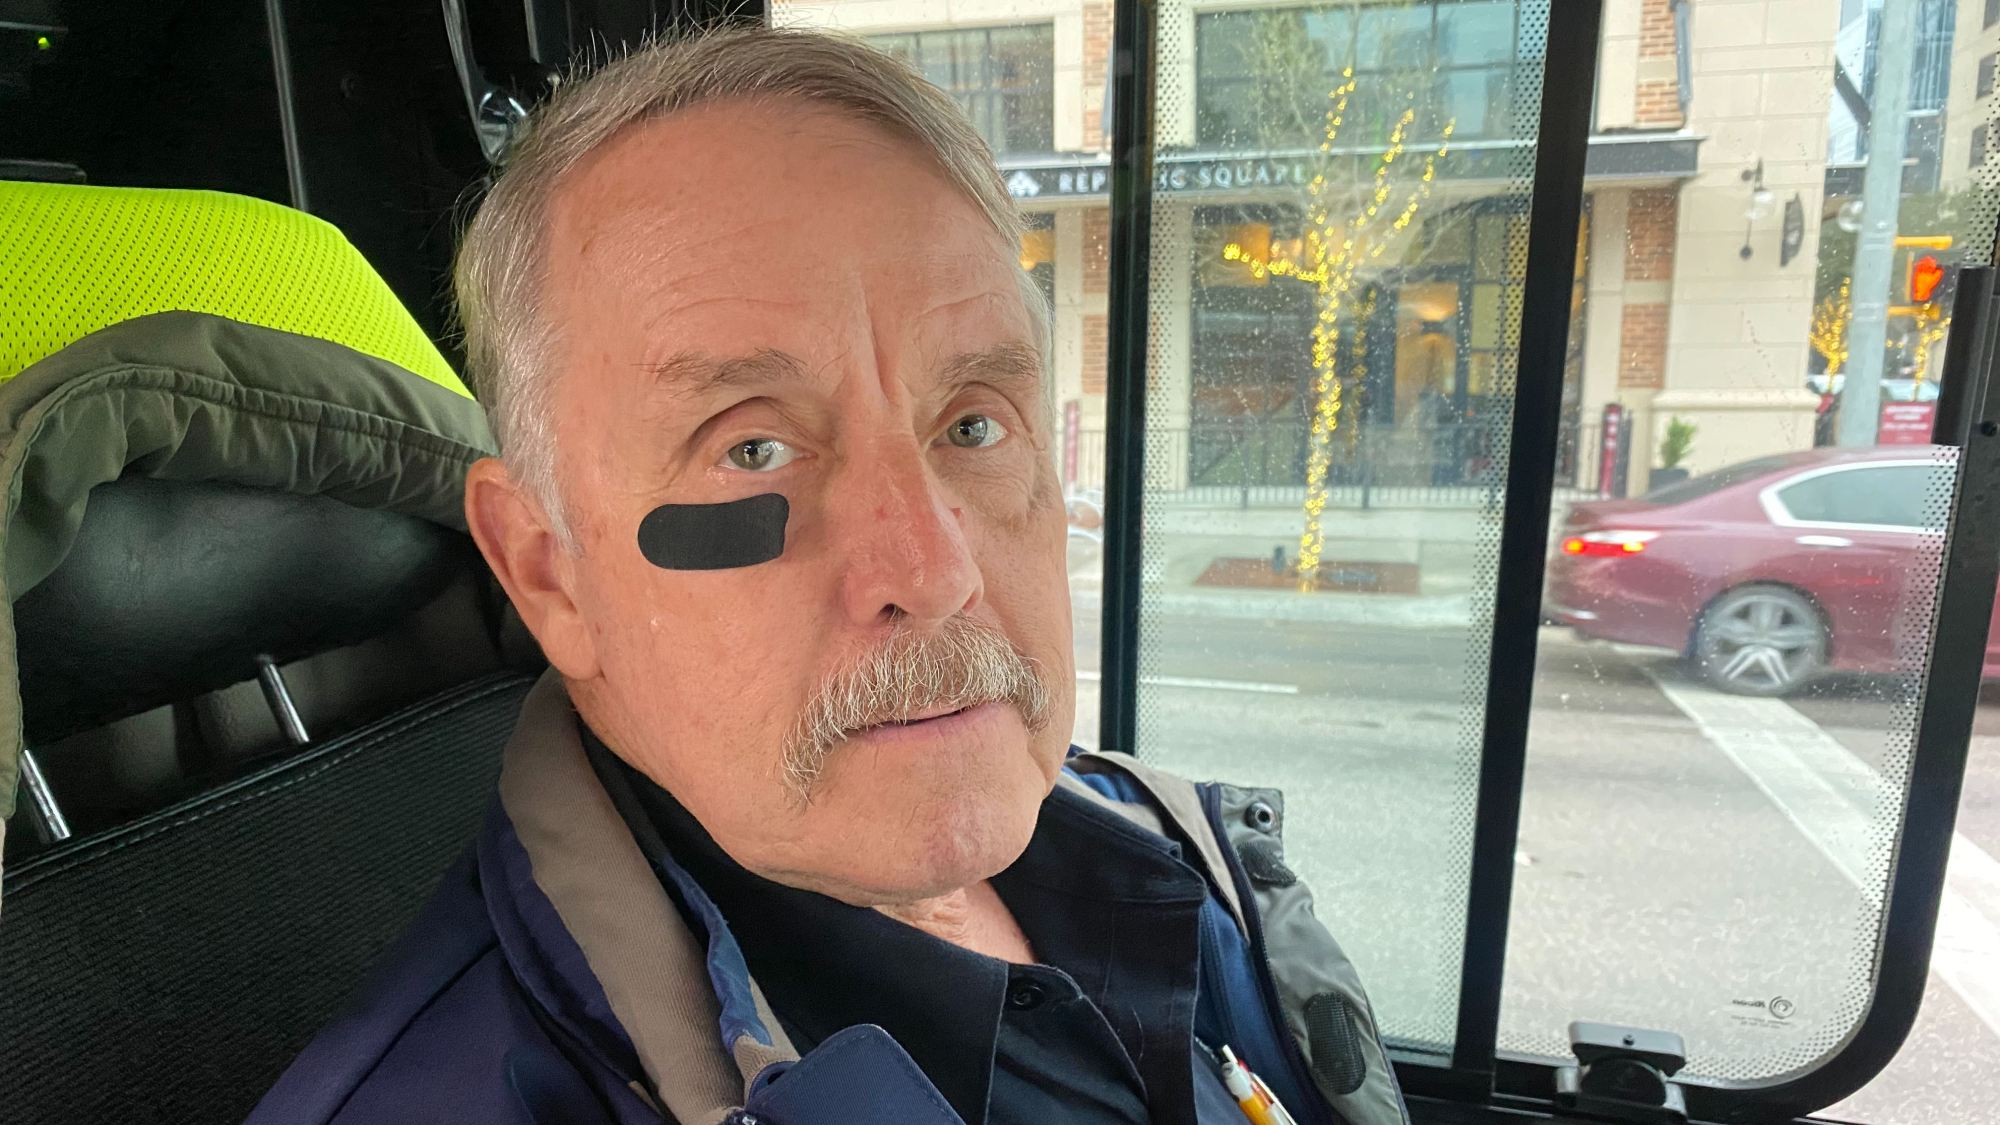 Cap Metro bus driver wears black bandage under eye